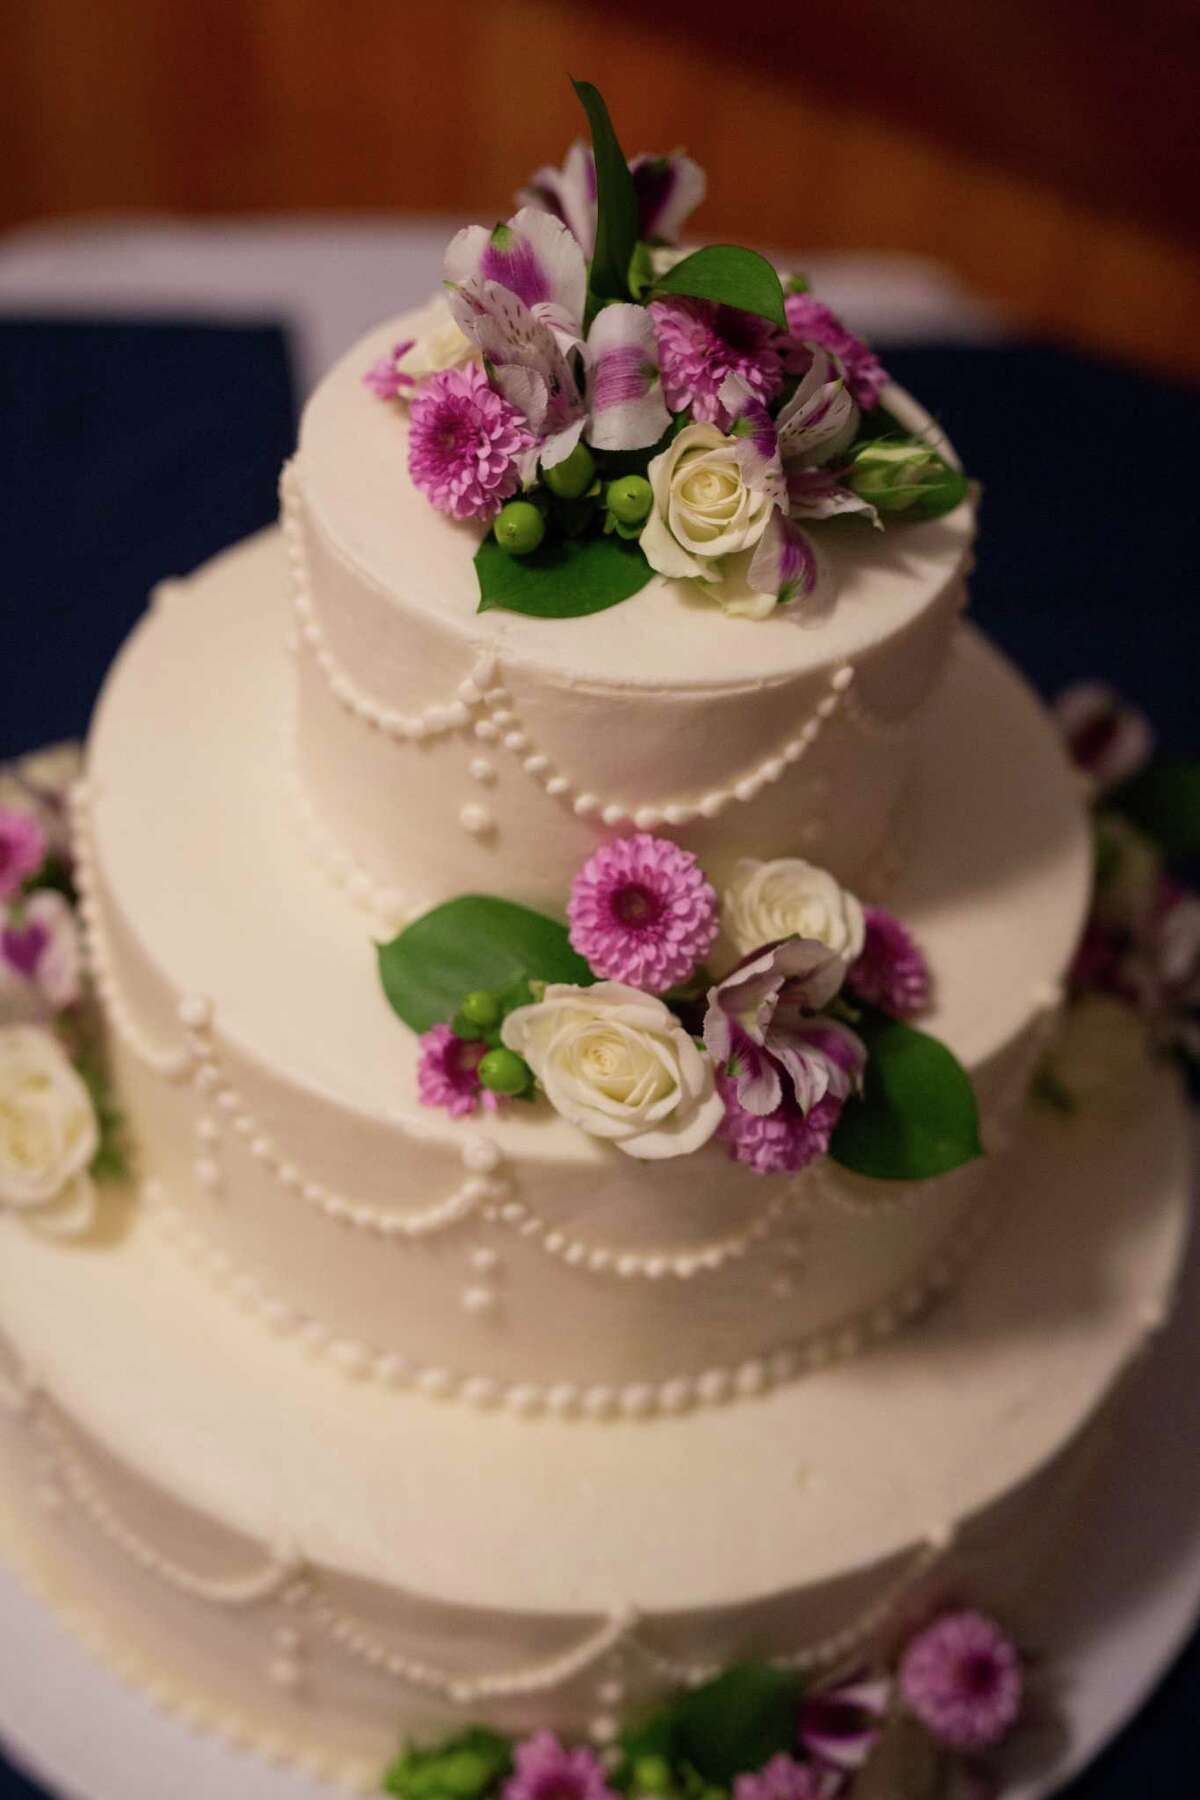 Detail of Cira Masters and Cory Carson wedding cake designed by Leah's Bakery in Round Lake at their September 12, 2015 nuptials. (Dave Bigler Photography)